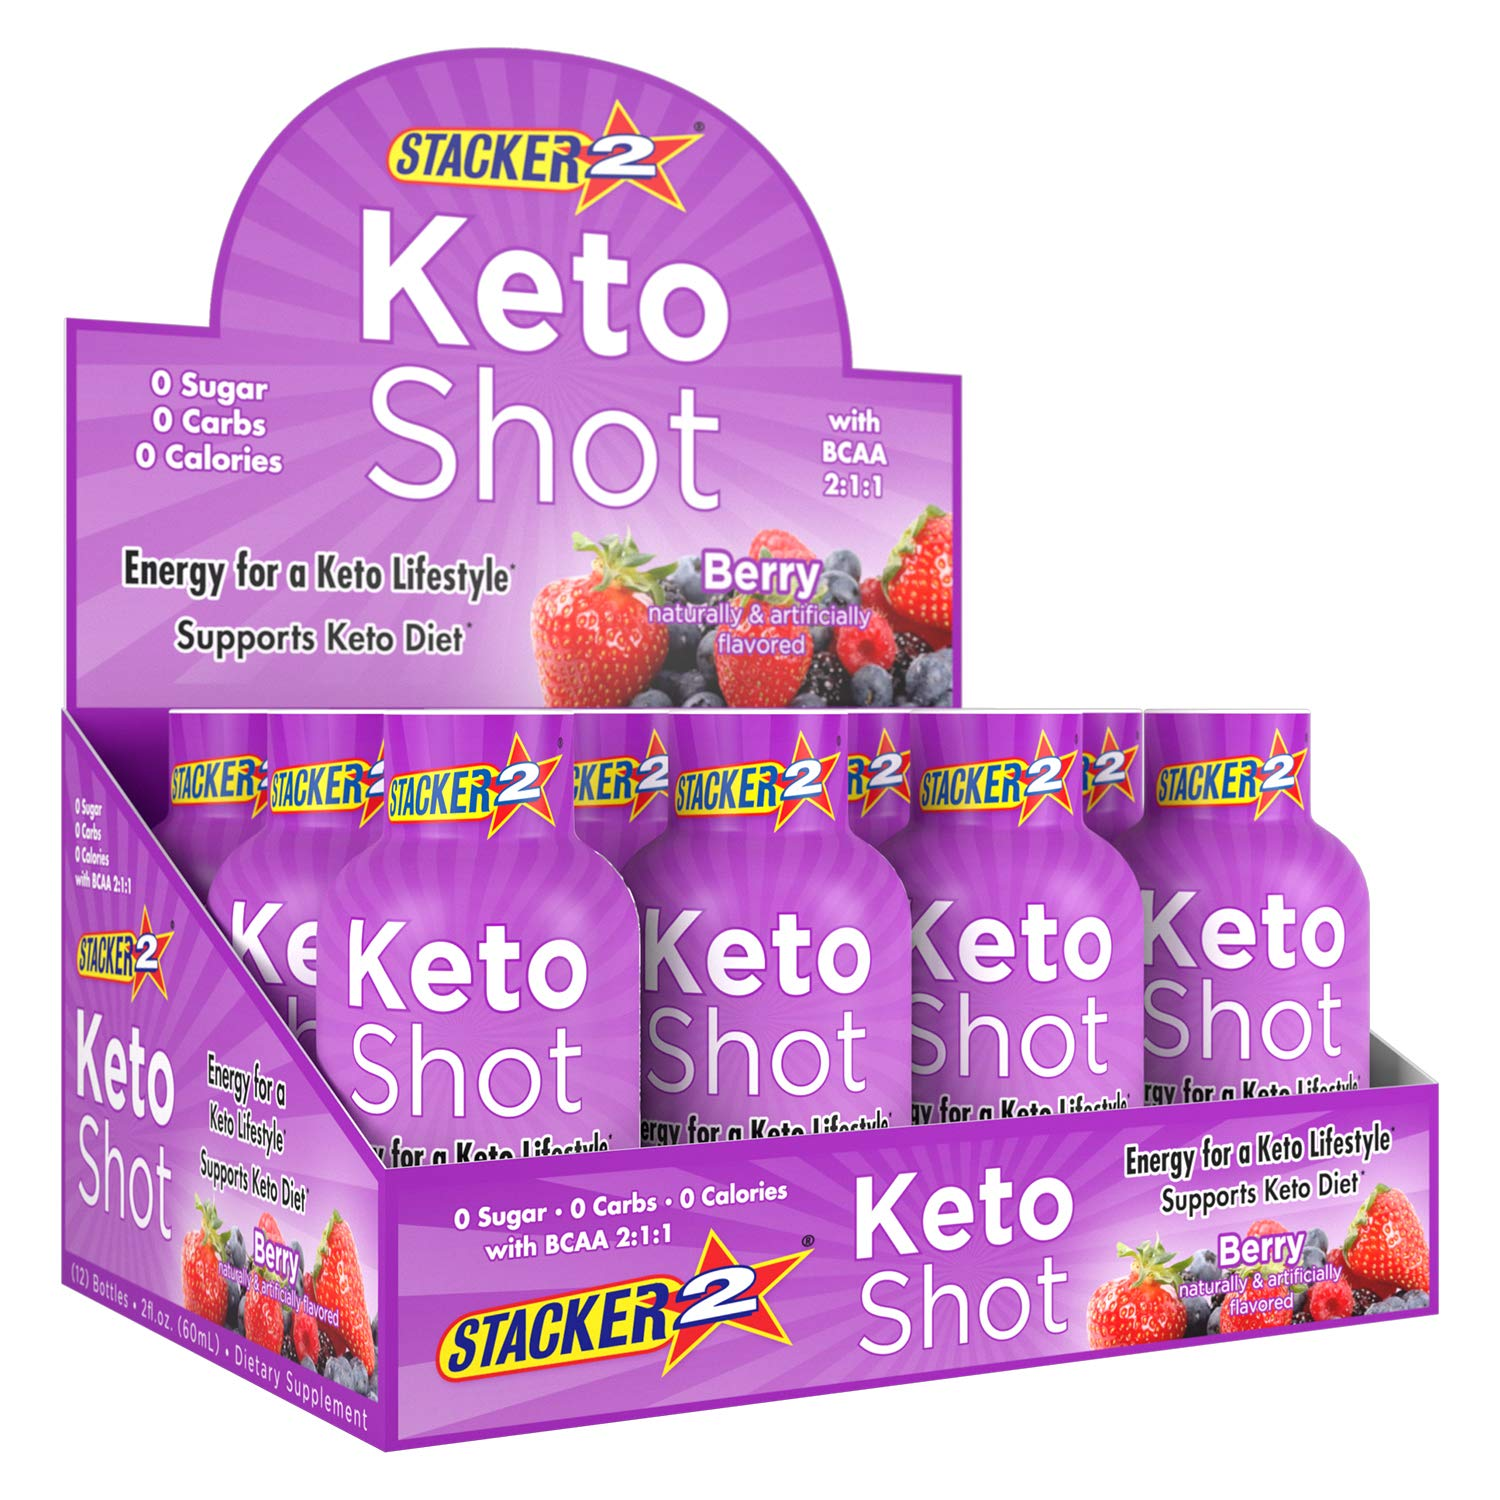 Stacker 2 Keto Diet Support Energy Shots Pre Workout Supplement 2 fl. oz. (Pack of 12) Berry